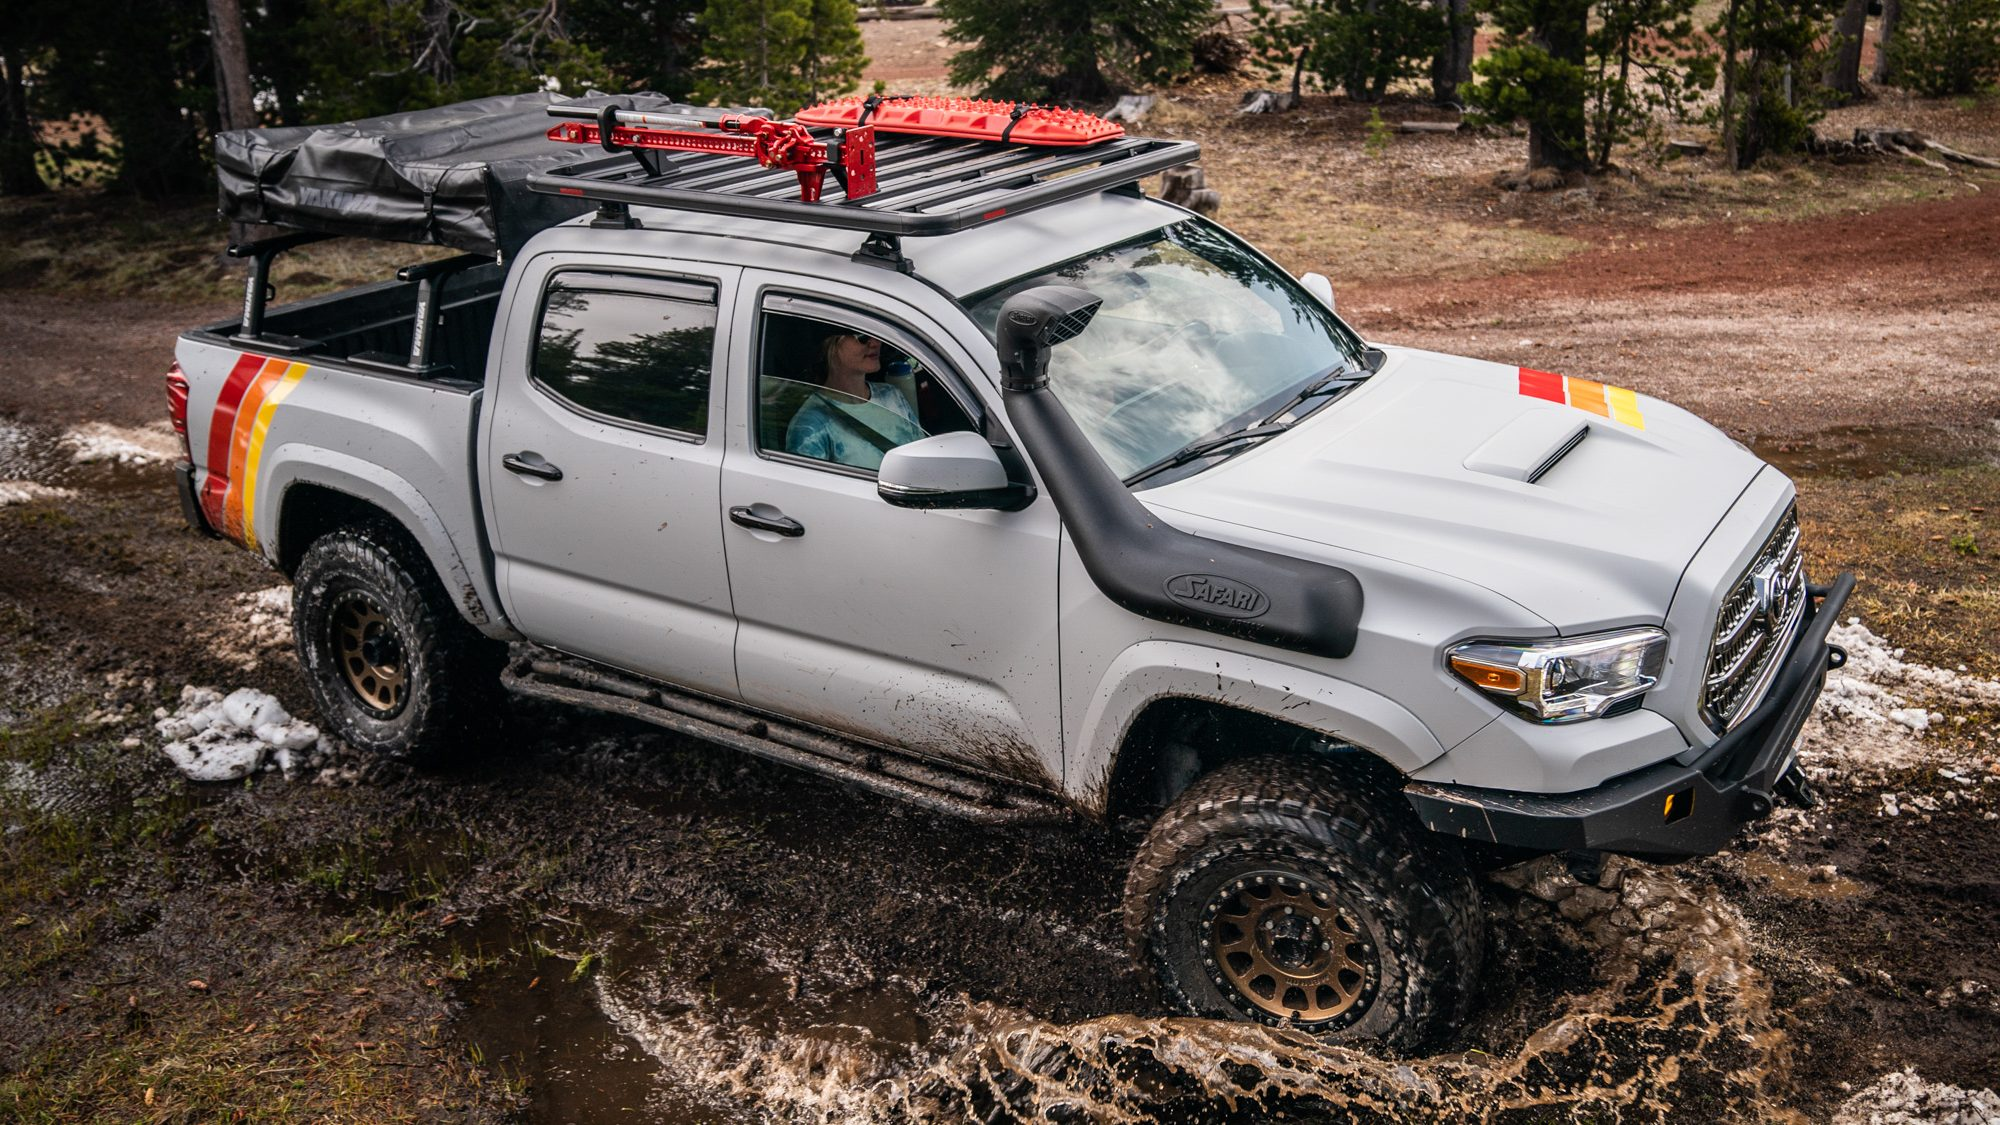 The Newest Overland Gear At Outdoor Retailer 2019